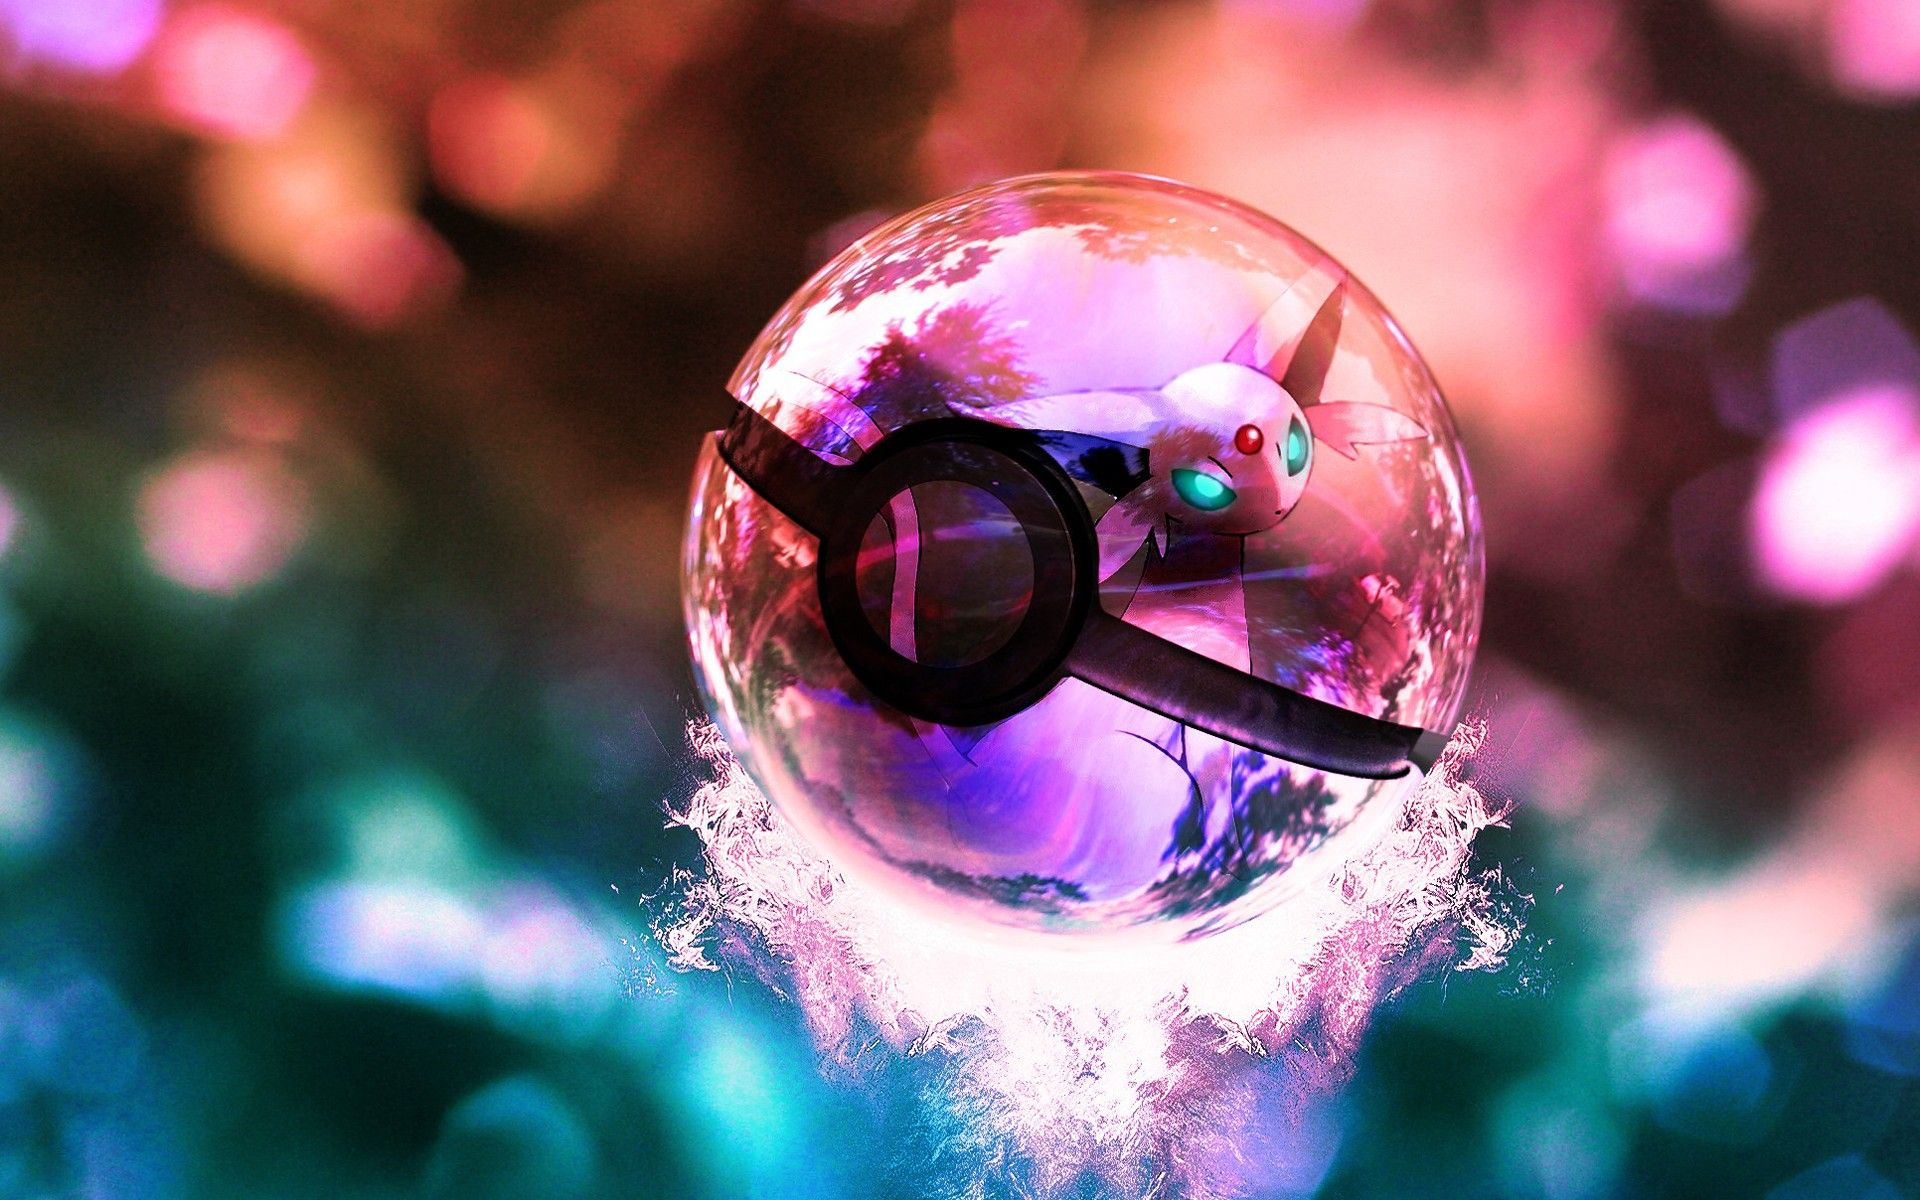 Pokemon Wallpaper Download 3d Download Pokemon Live Wallpaper Gallery If You Have Your O Iphone Wallpaper Pokemon Hd Anime Wallpapers Cool Pokemon Wallpapers